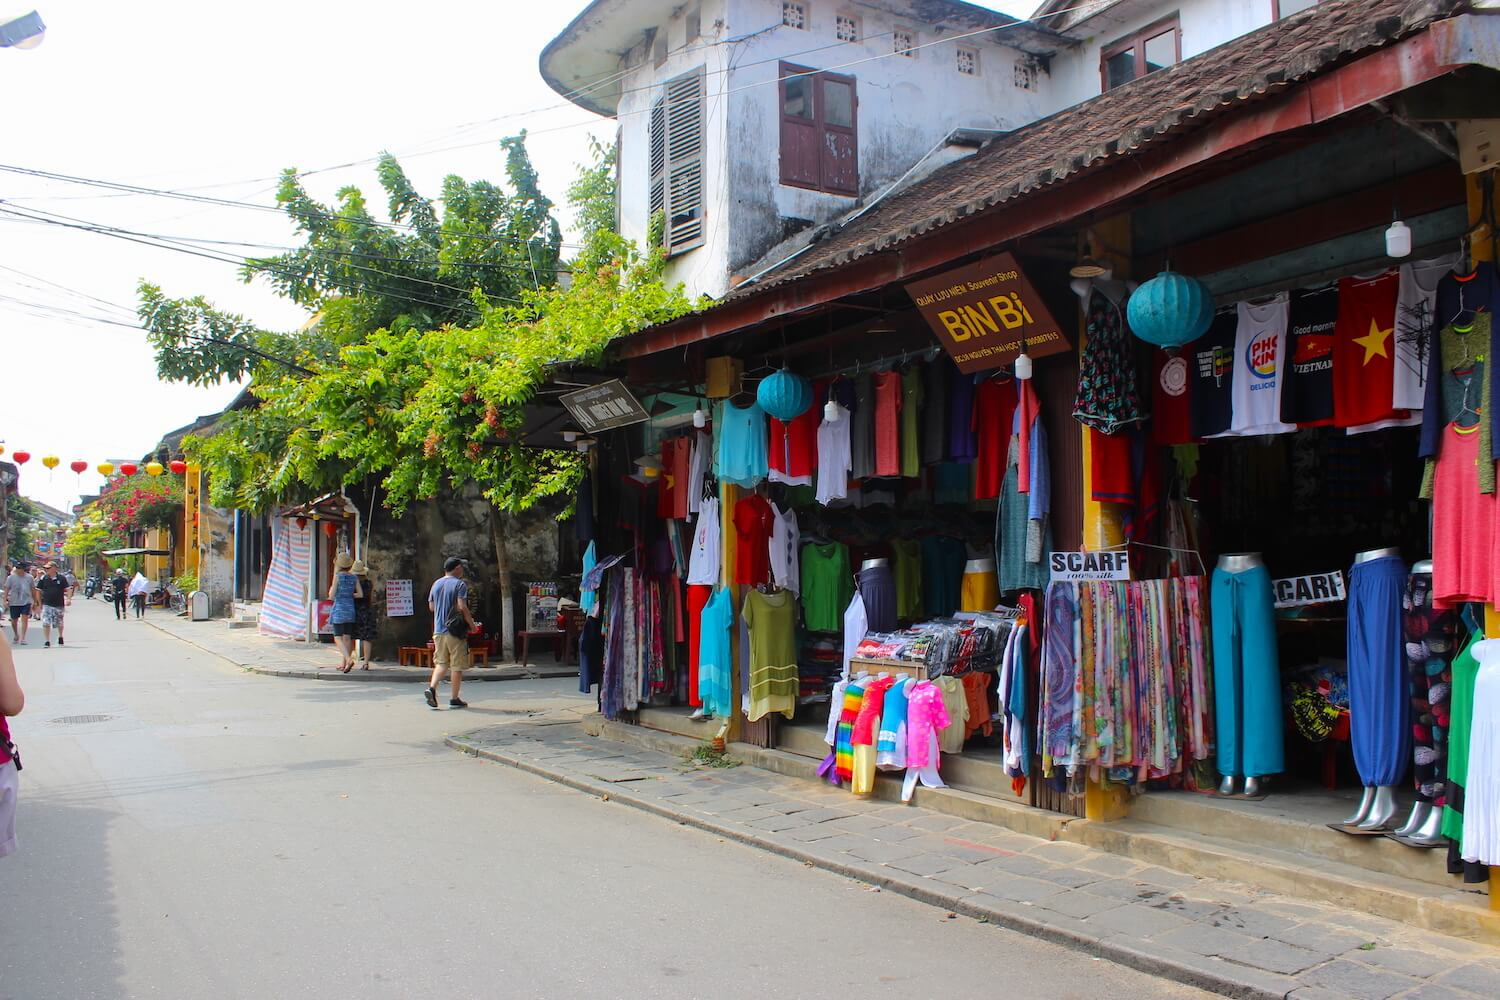 hoi an tailored clothing inside the ancient town